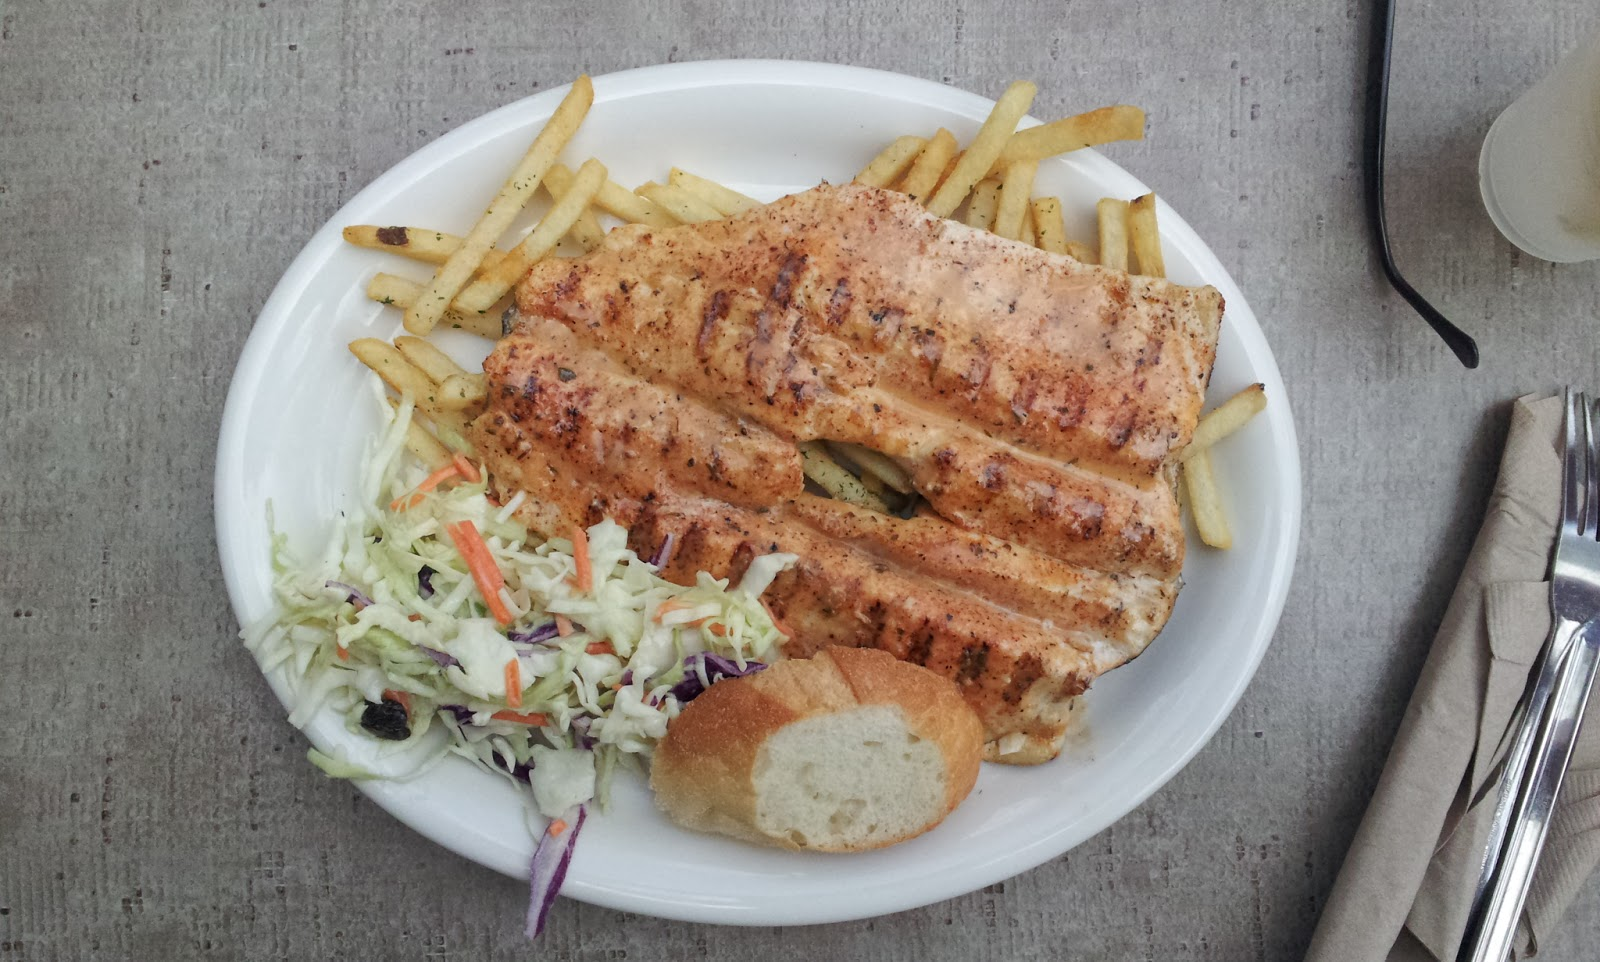 California fish grill chinookers journey for California fish grill locations